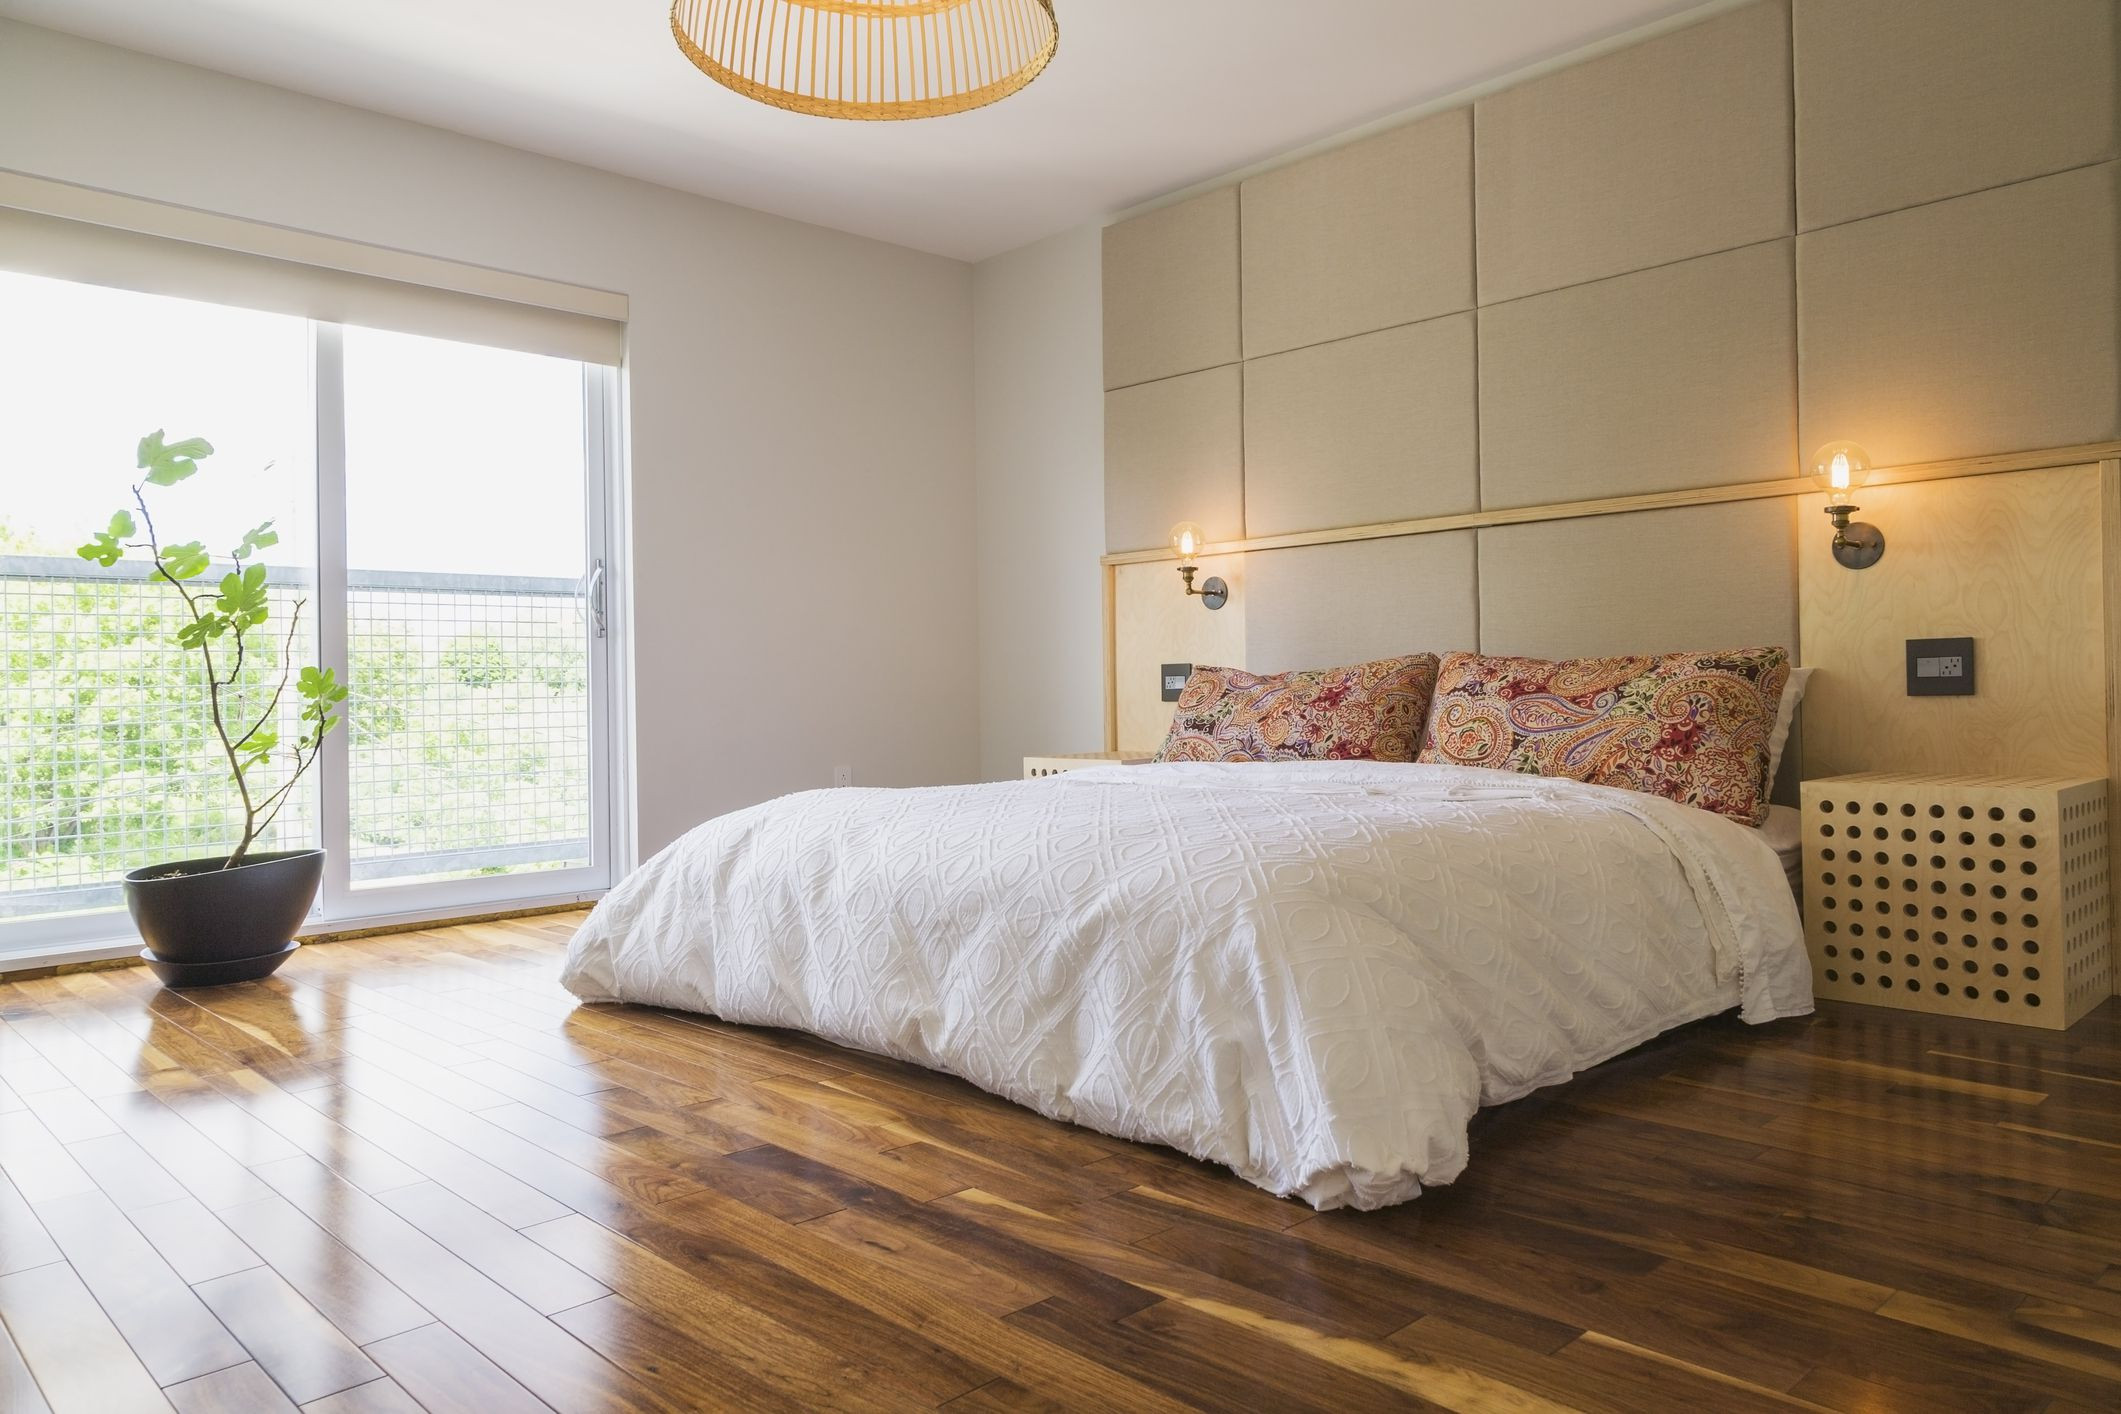 Best ideas about Feng Shui Bedroom . Save or Pin How To Feng Shui Your Bedroom Now.